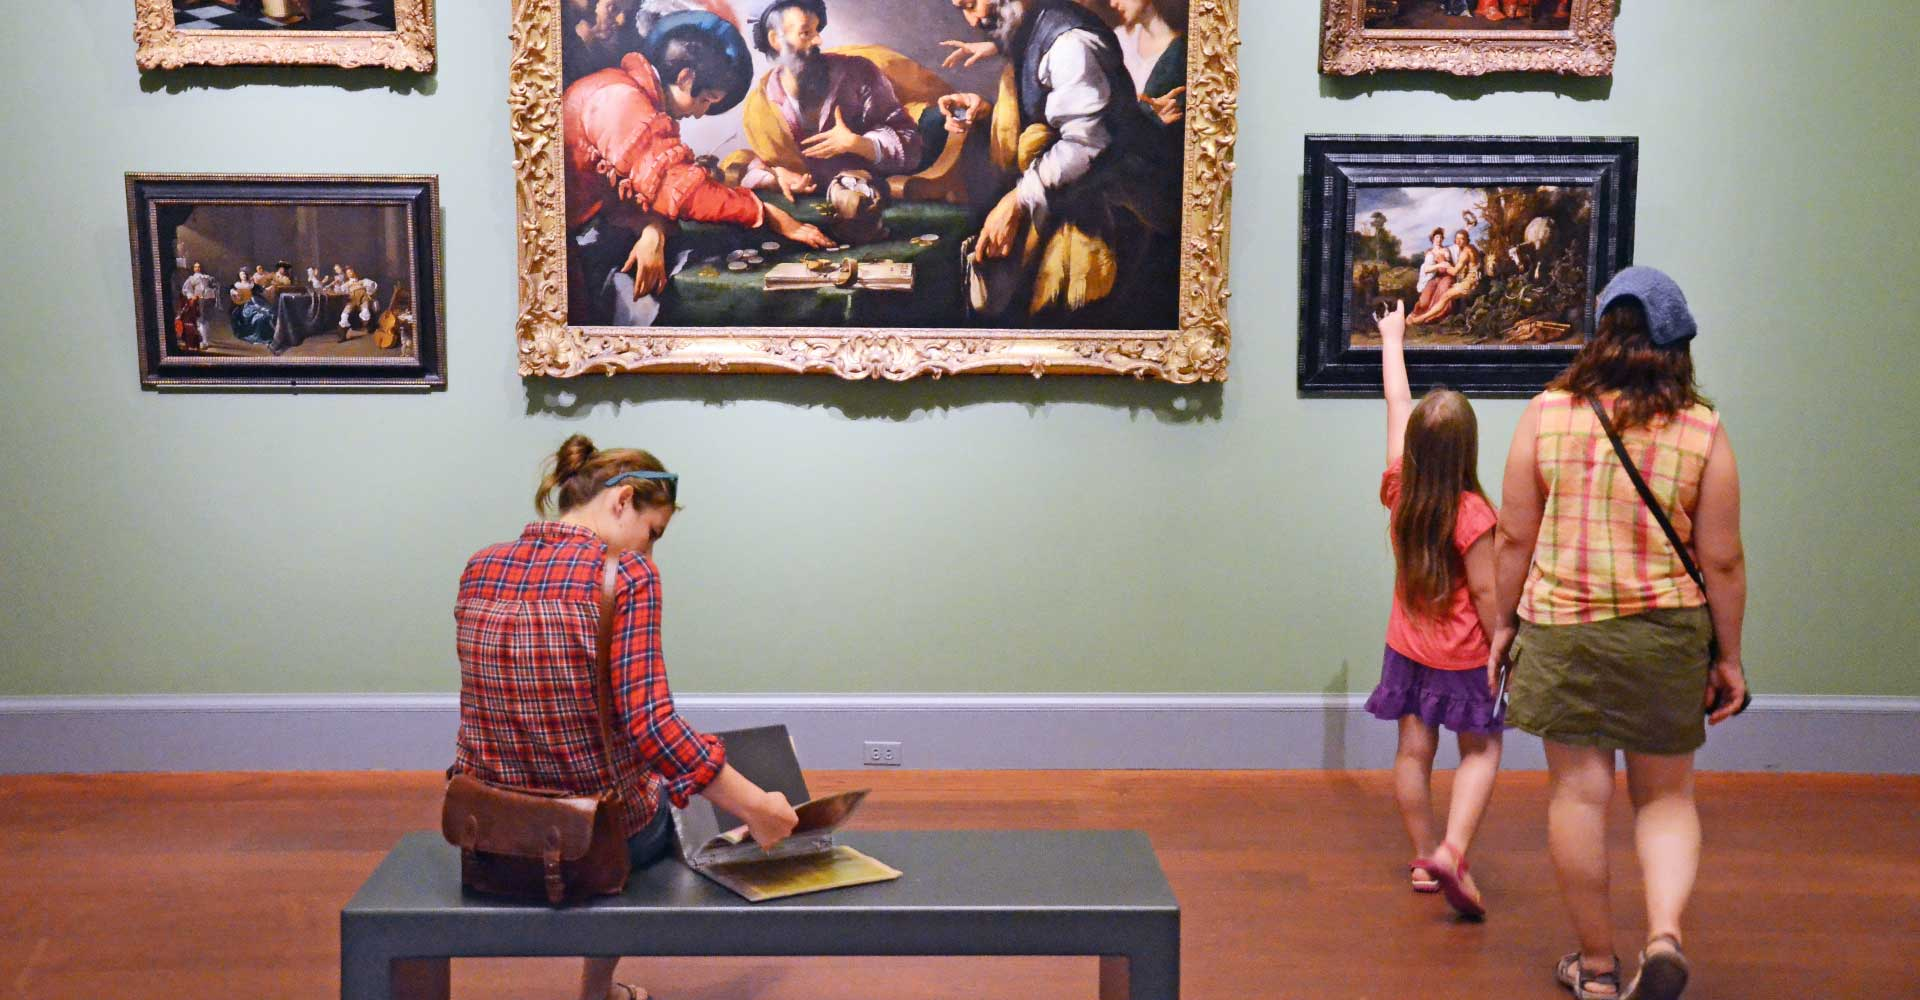 Visitors enjoy paintings in a European gallery